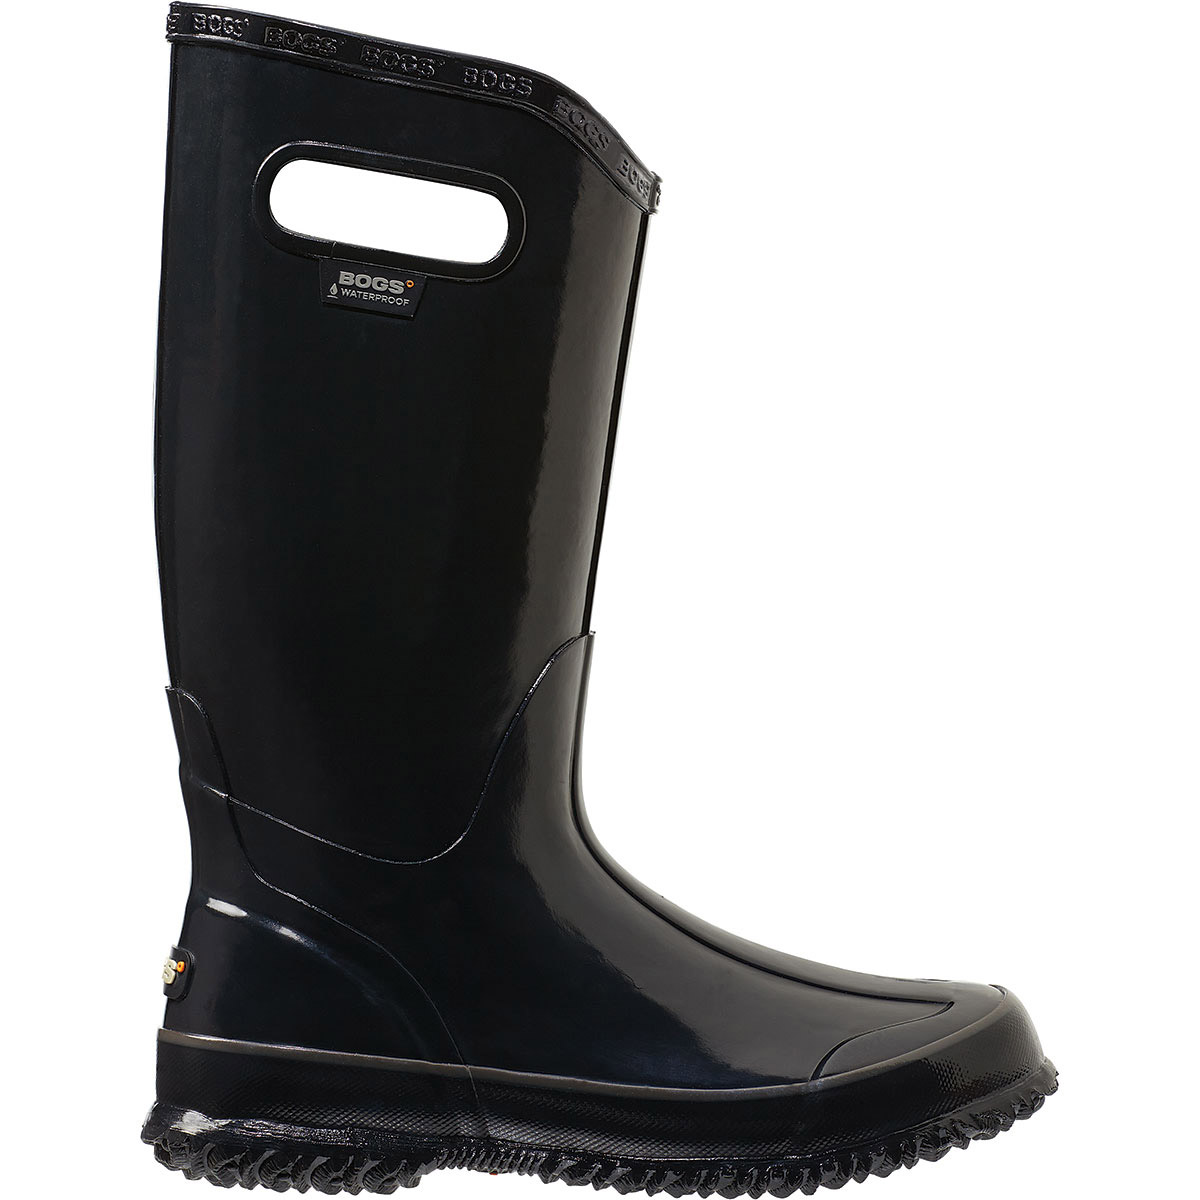 Womans Rain Boots Fva8PuVu